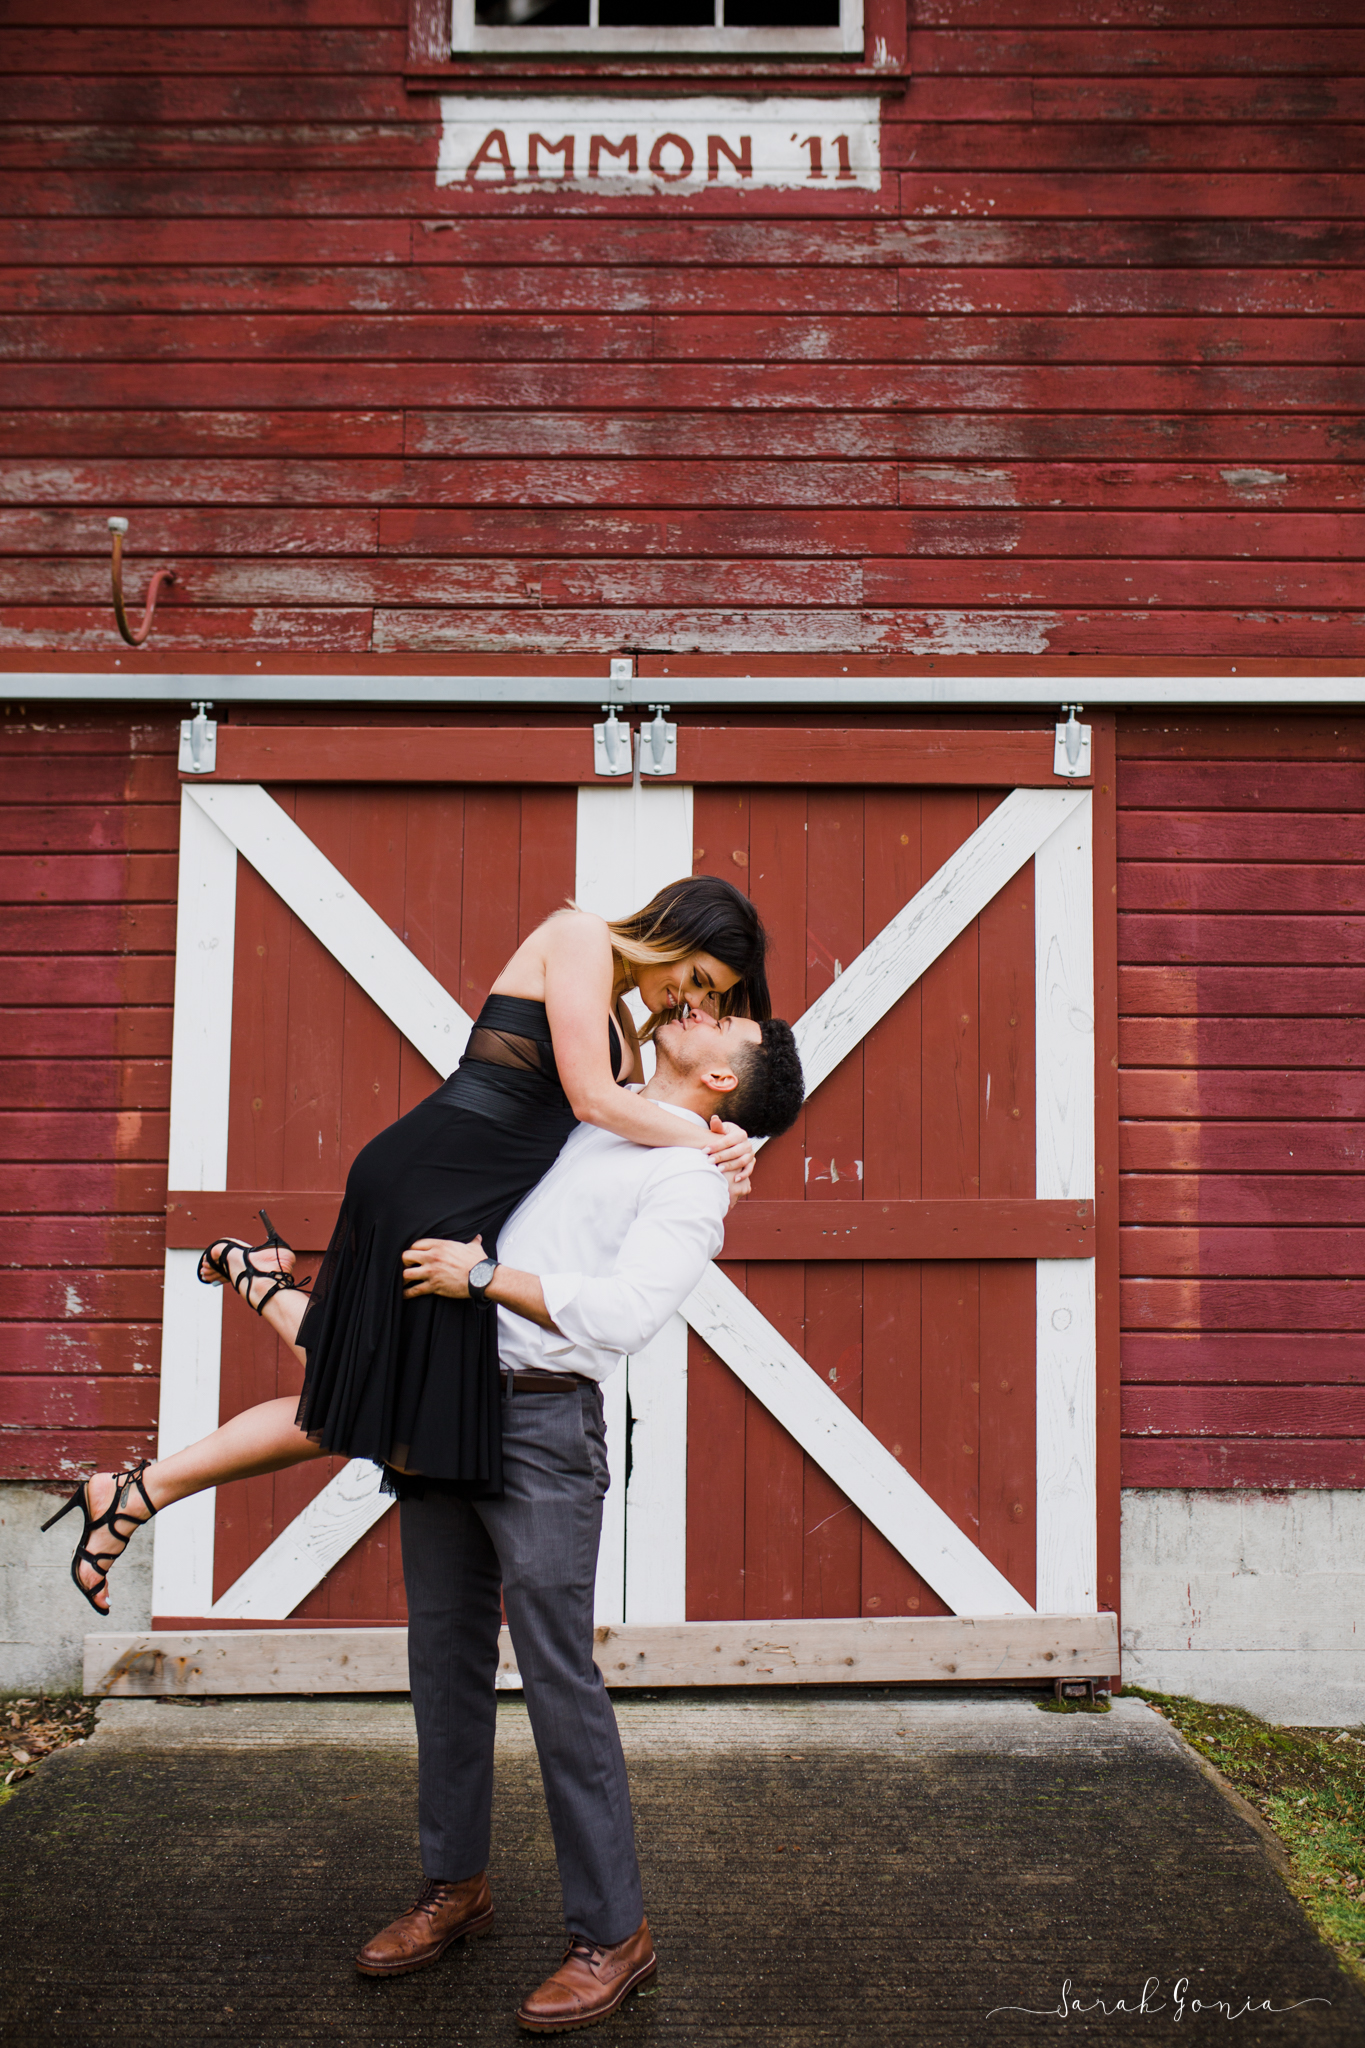 Olympia Photographer Engagement, Love Stories and Weddings Romantic